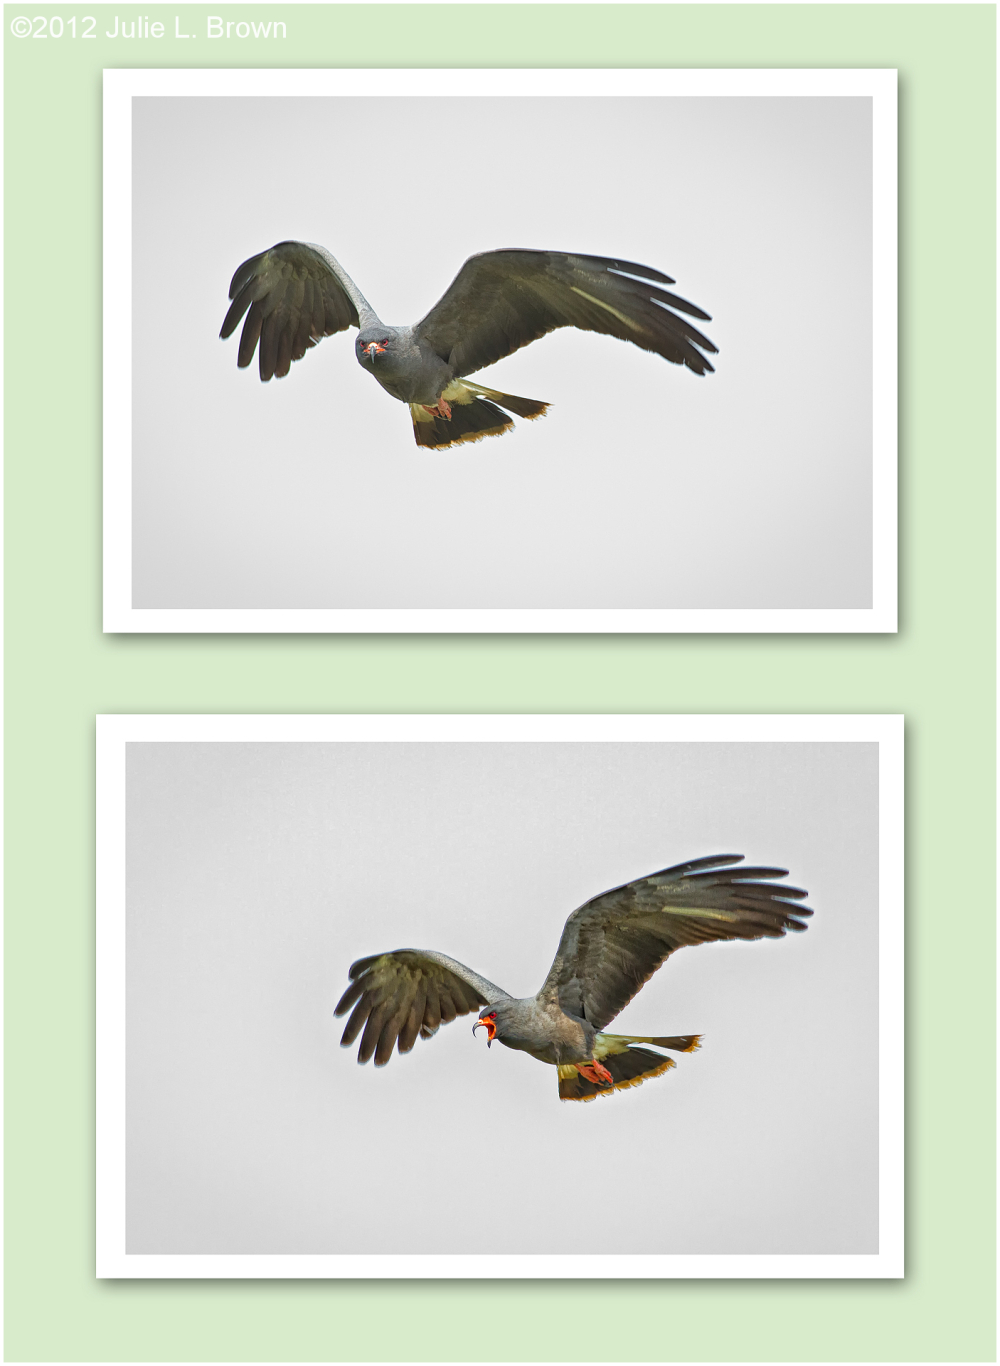 snail-kite-male-flight hendry-county florida